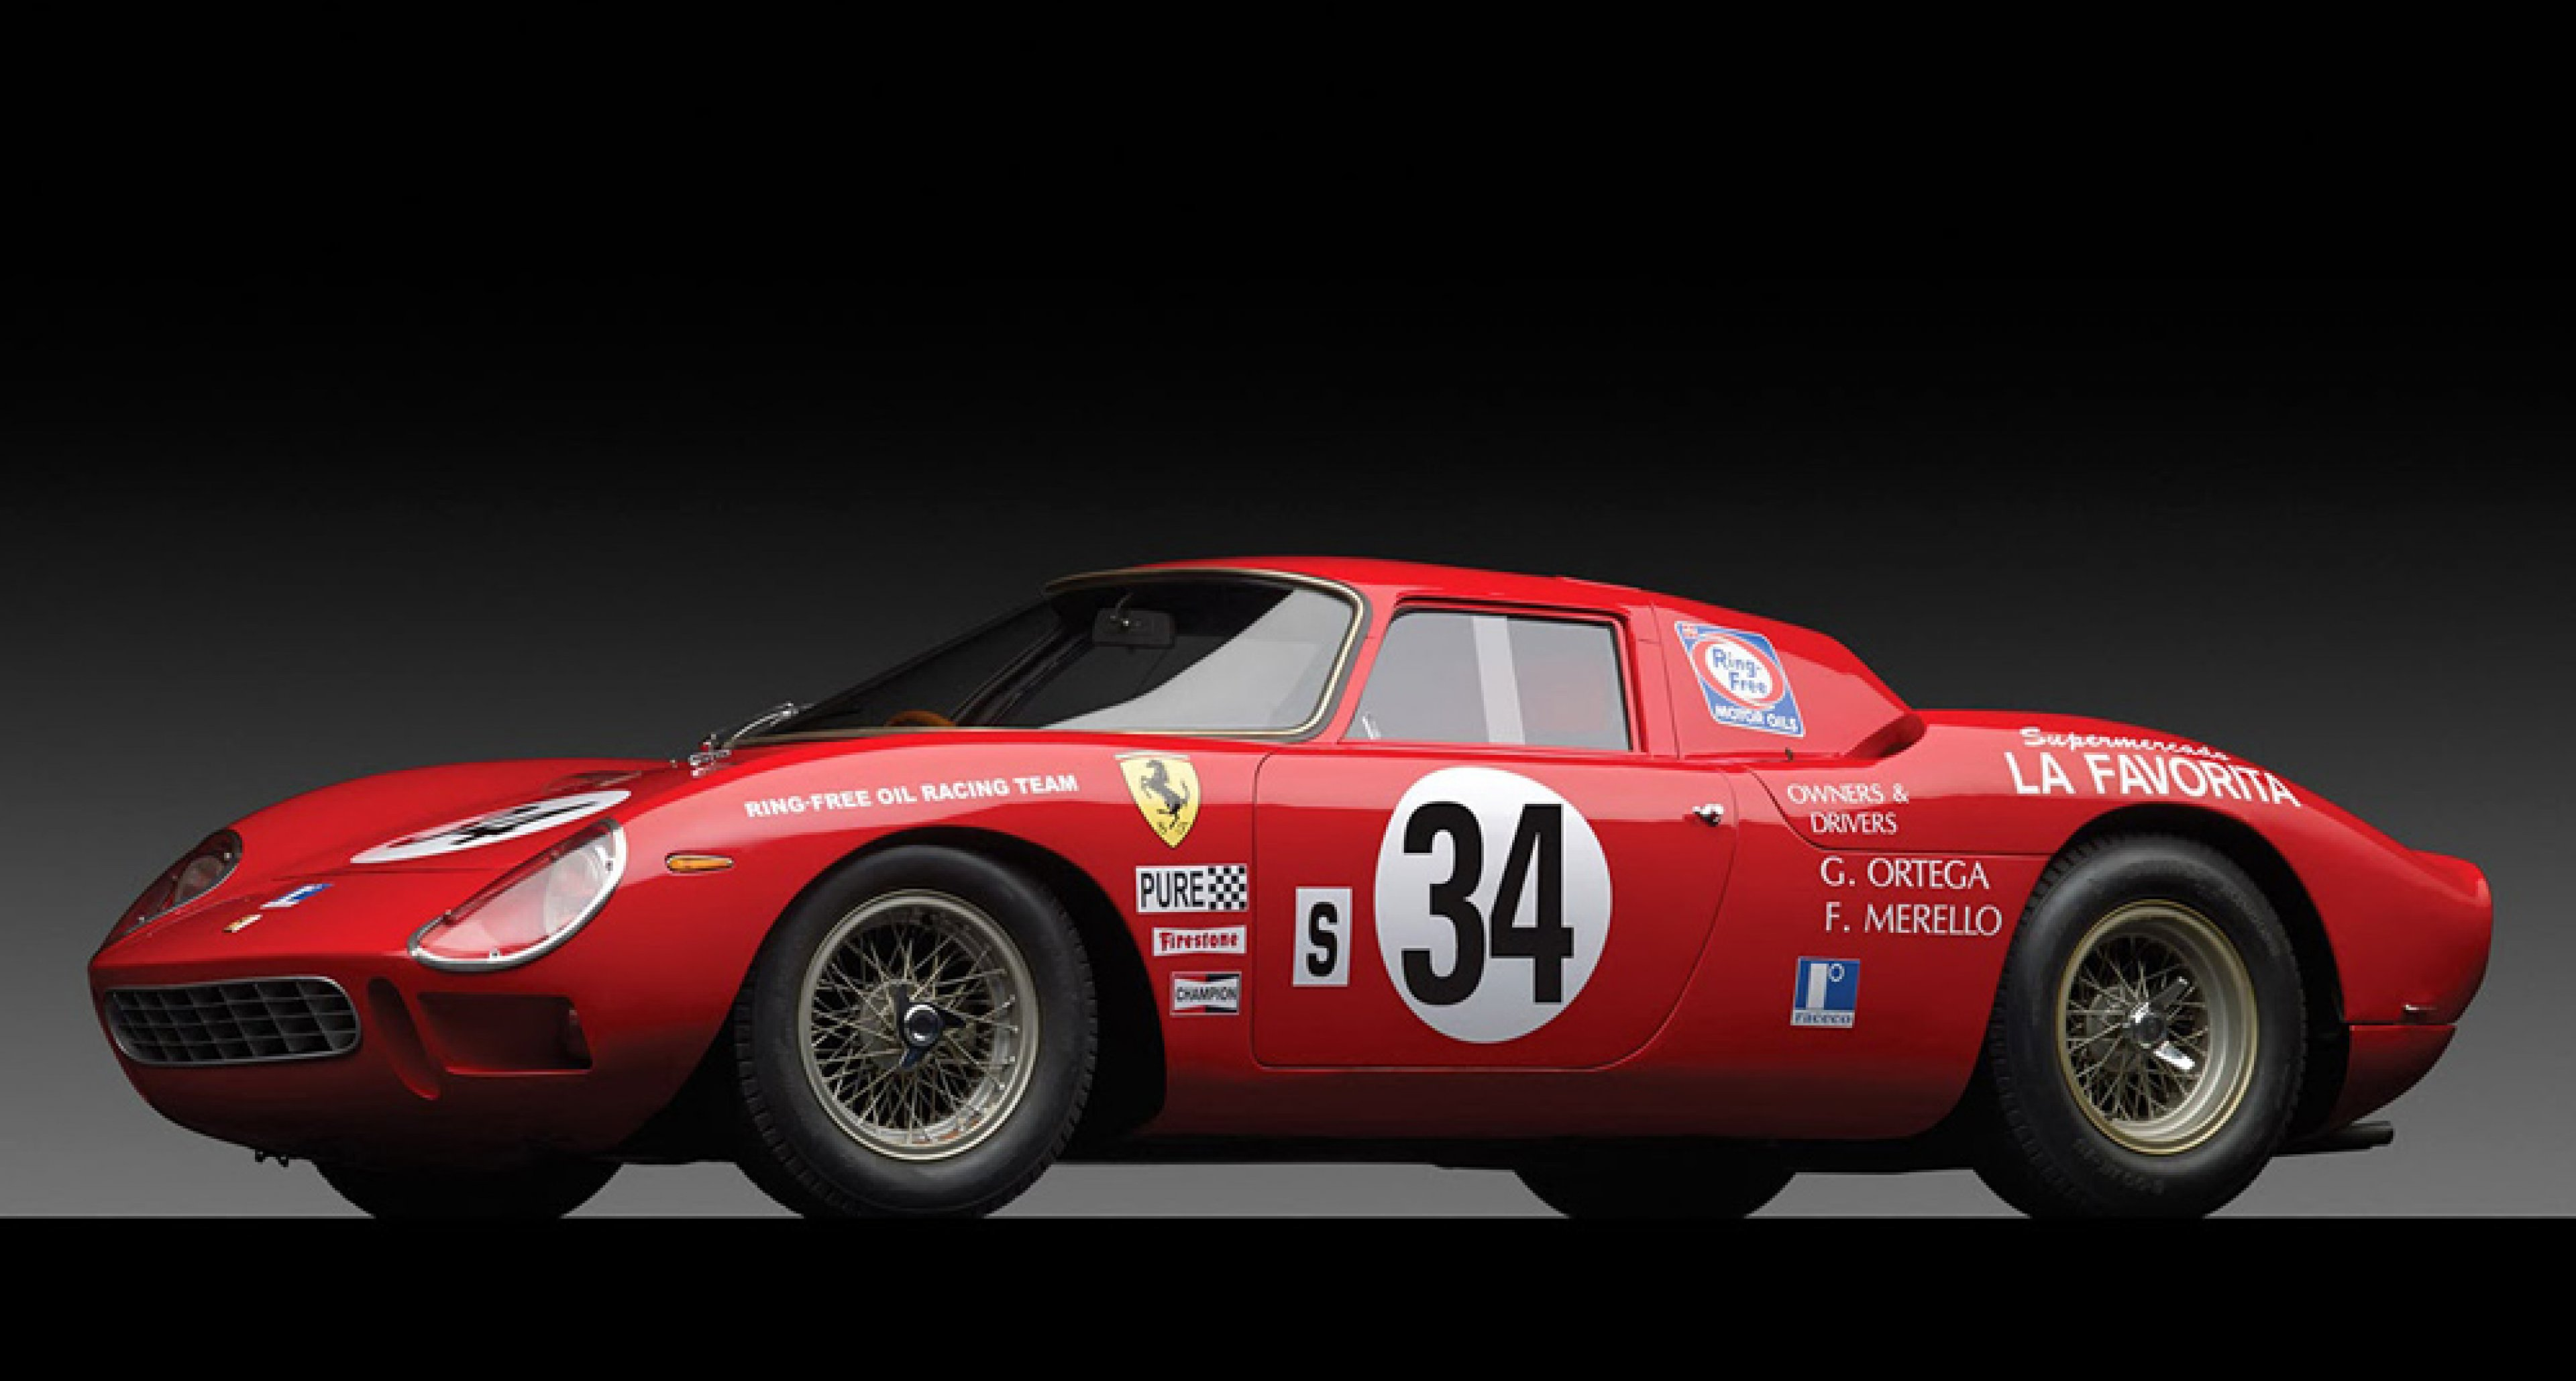 1964 Ferrari 250 LM, sold by RM Auctions in November 2013 for $ 14,477,729.